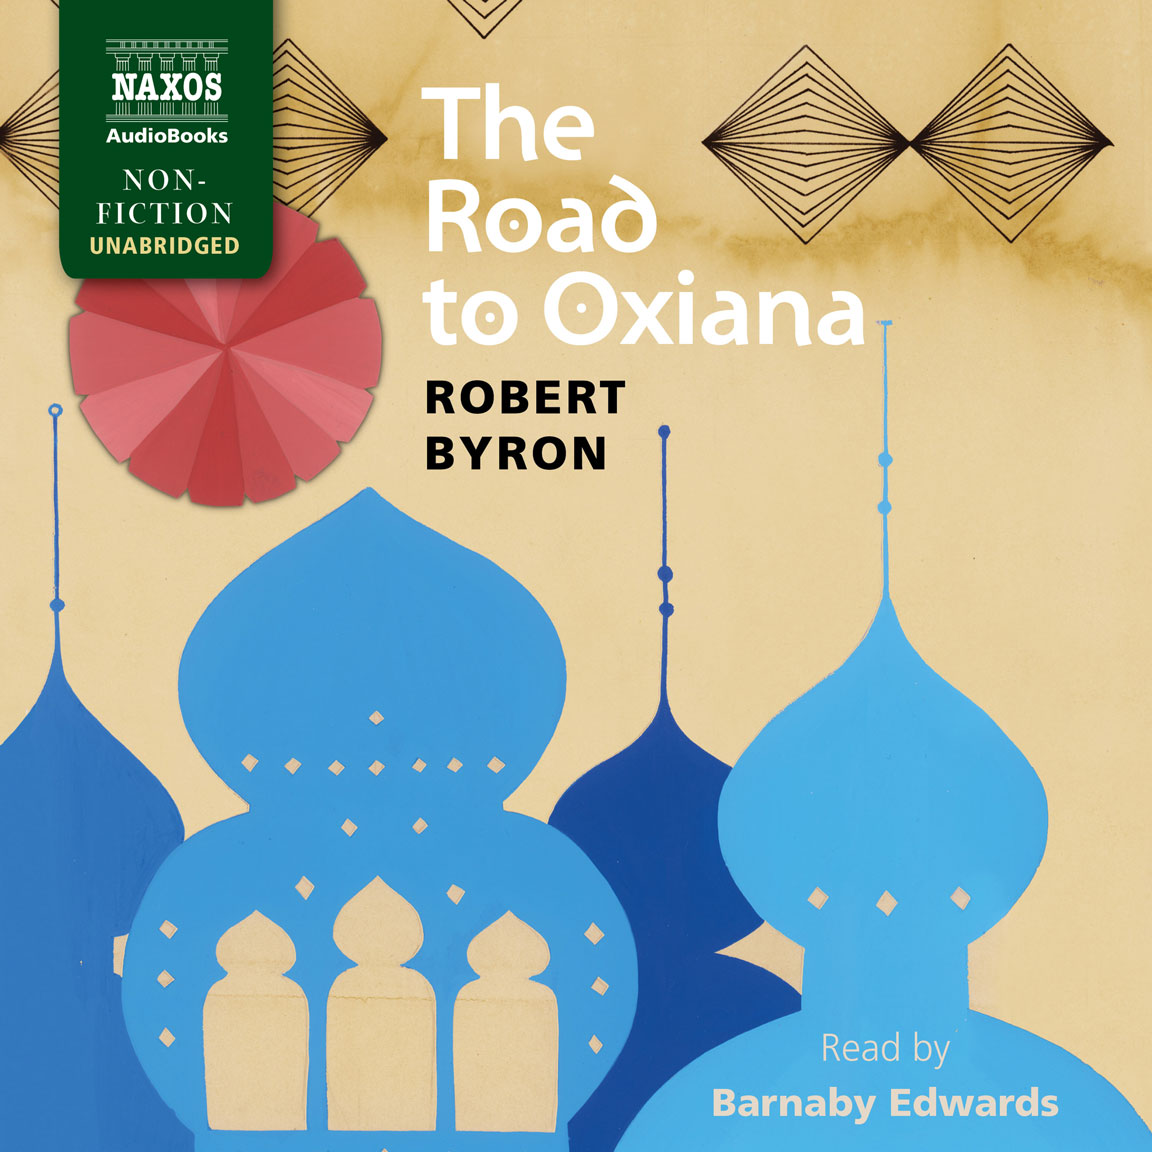 The Road to Oxiana (unabridged)